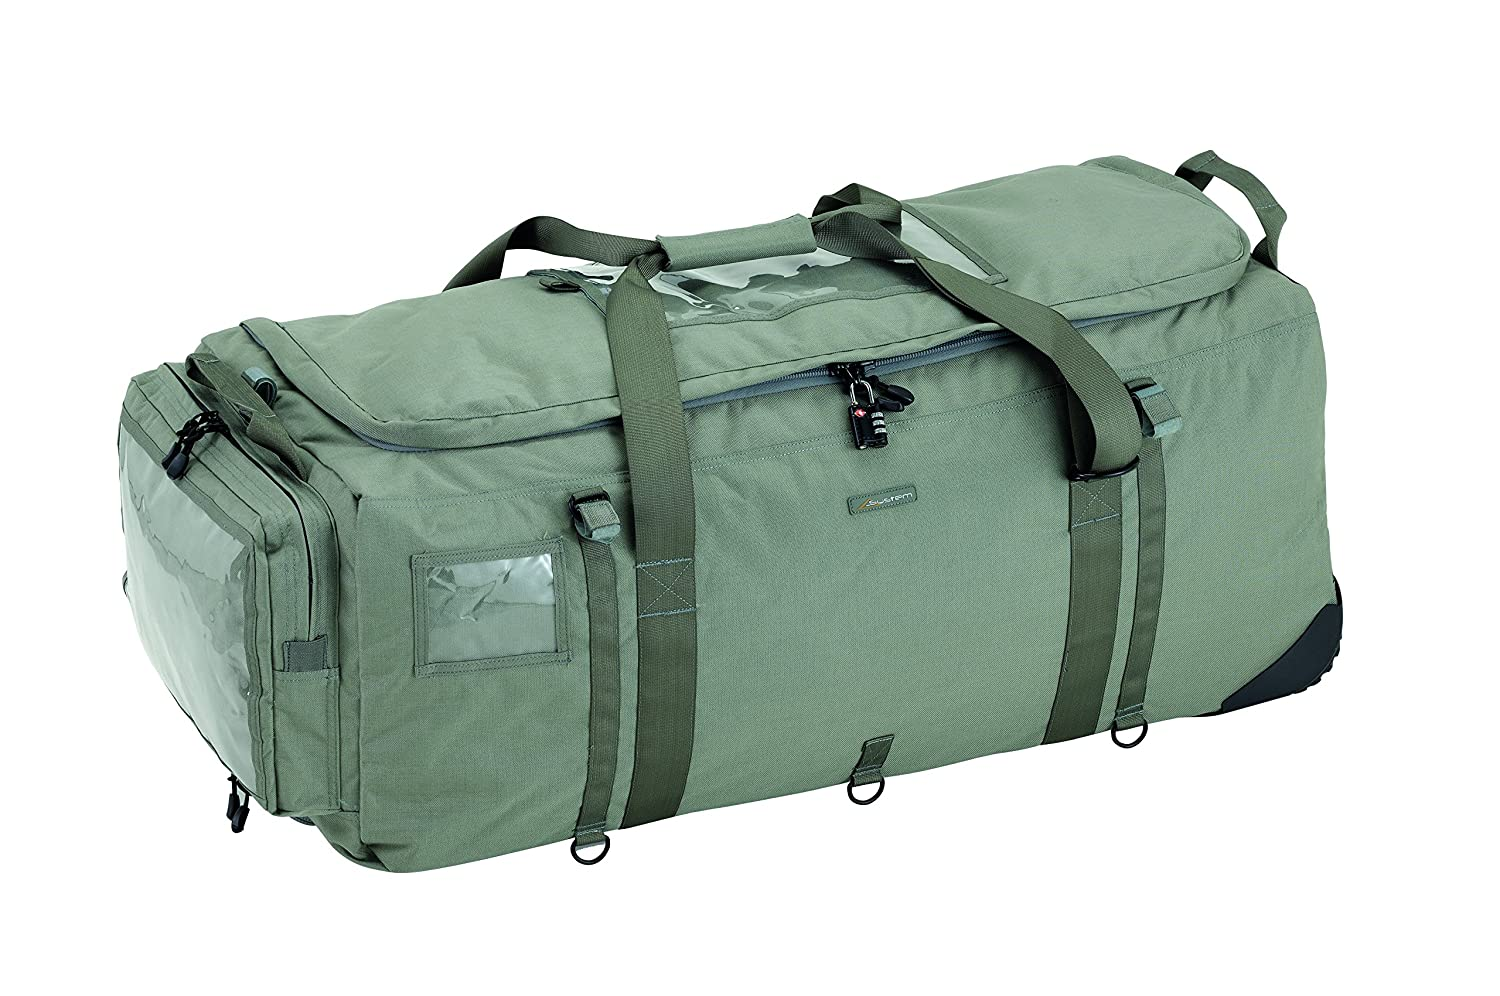 DEFCON 5 Expeditionary Trolley Travel Bag Reisetrolley